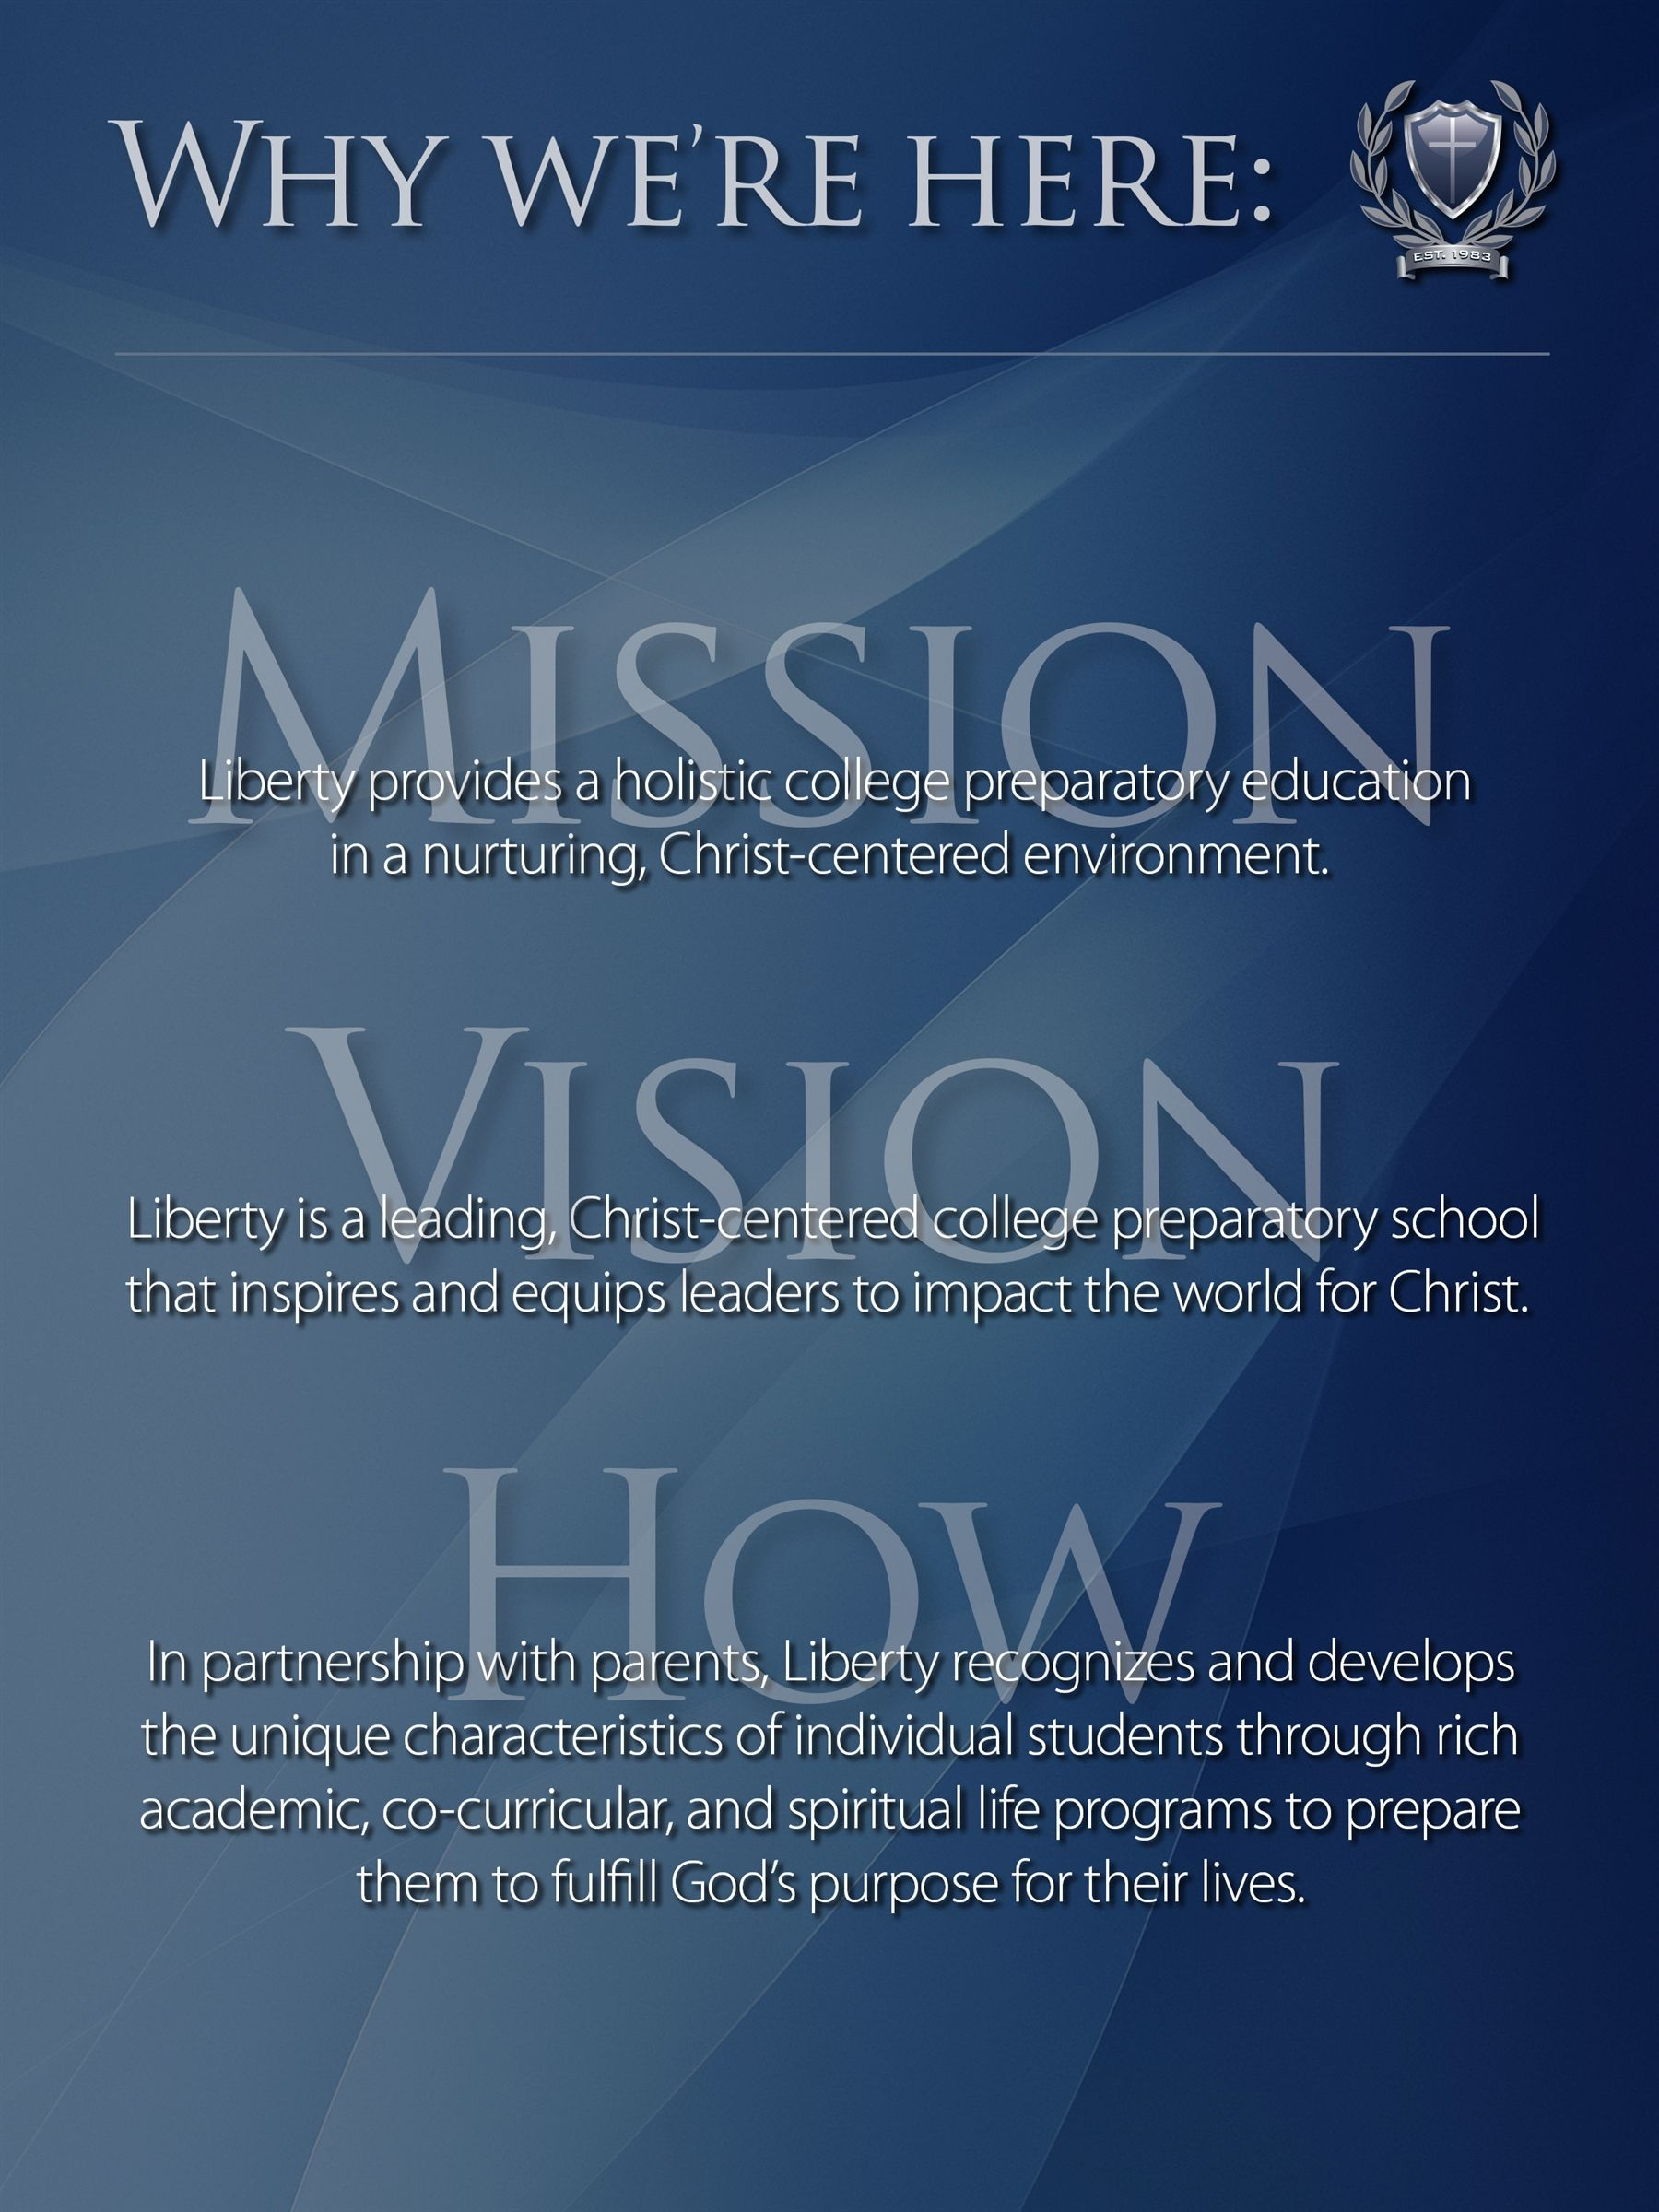 About - What We Believe - Mission Statement